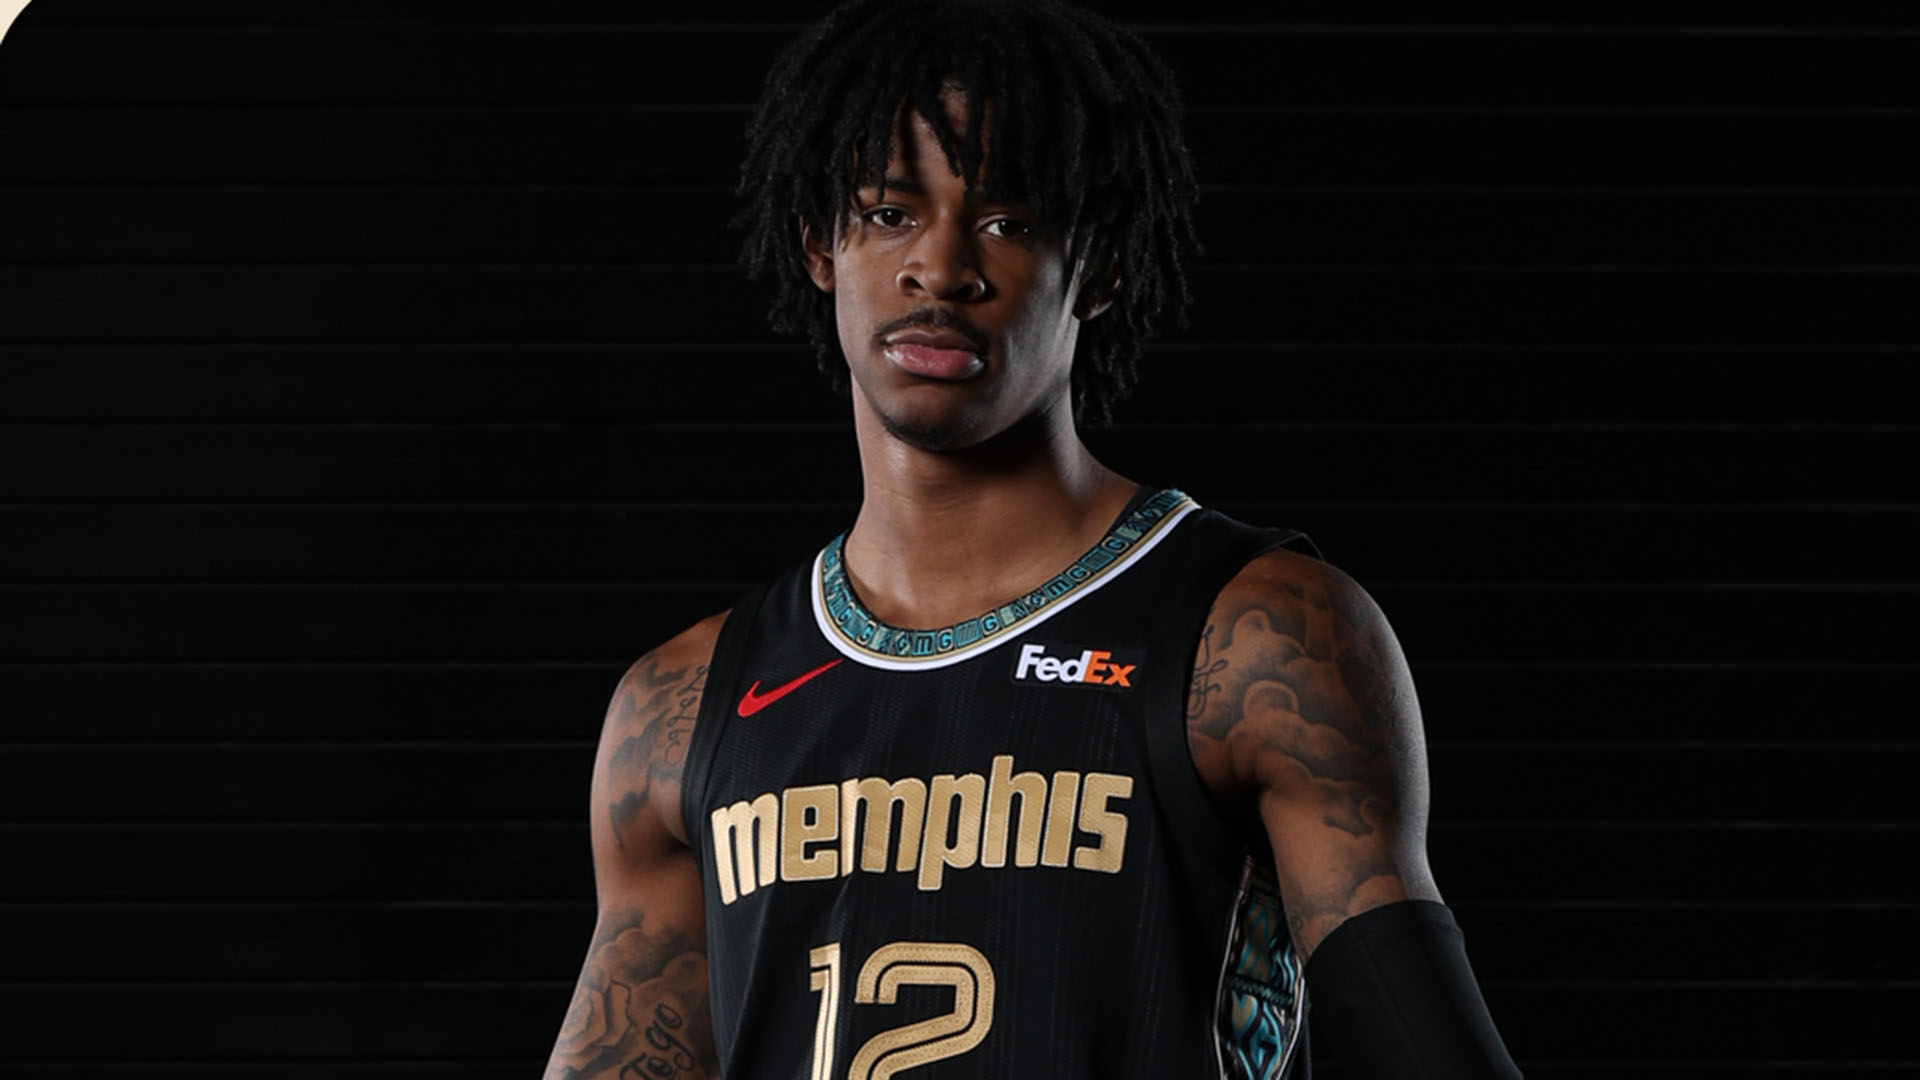 Memphis pays homage to its music history with City uniform